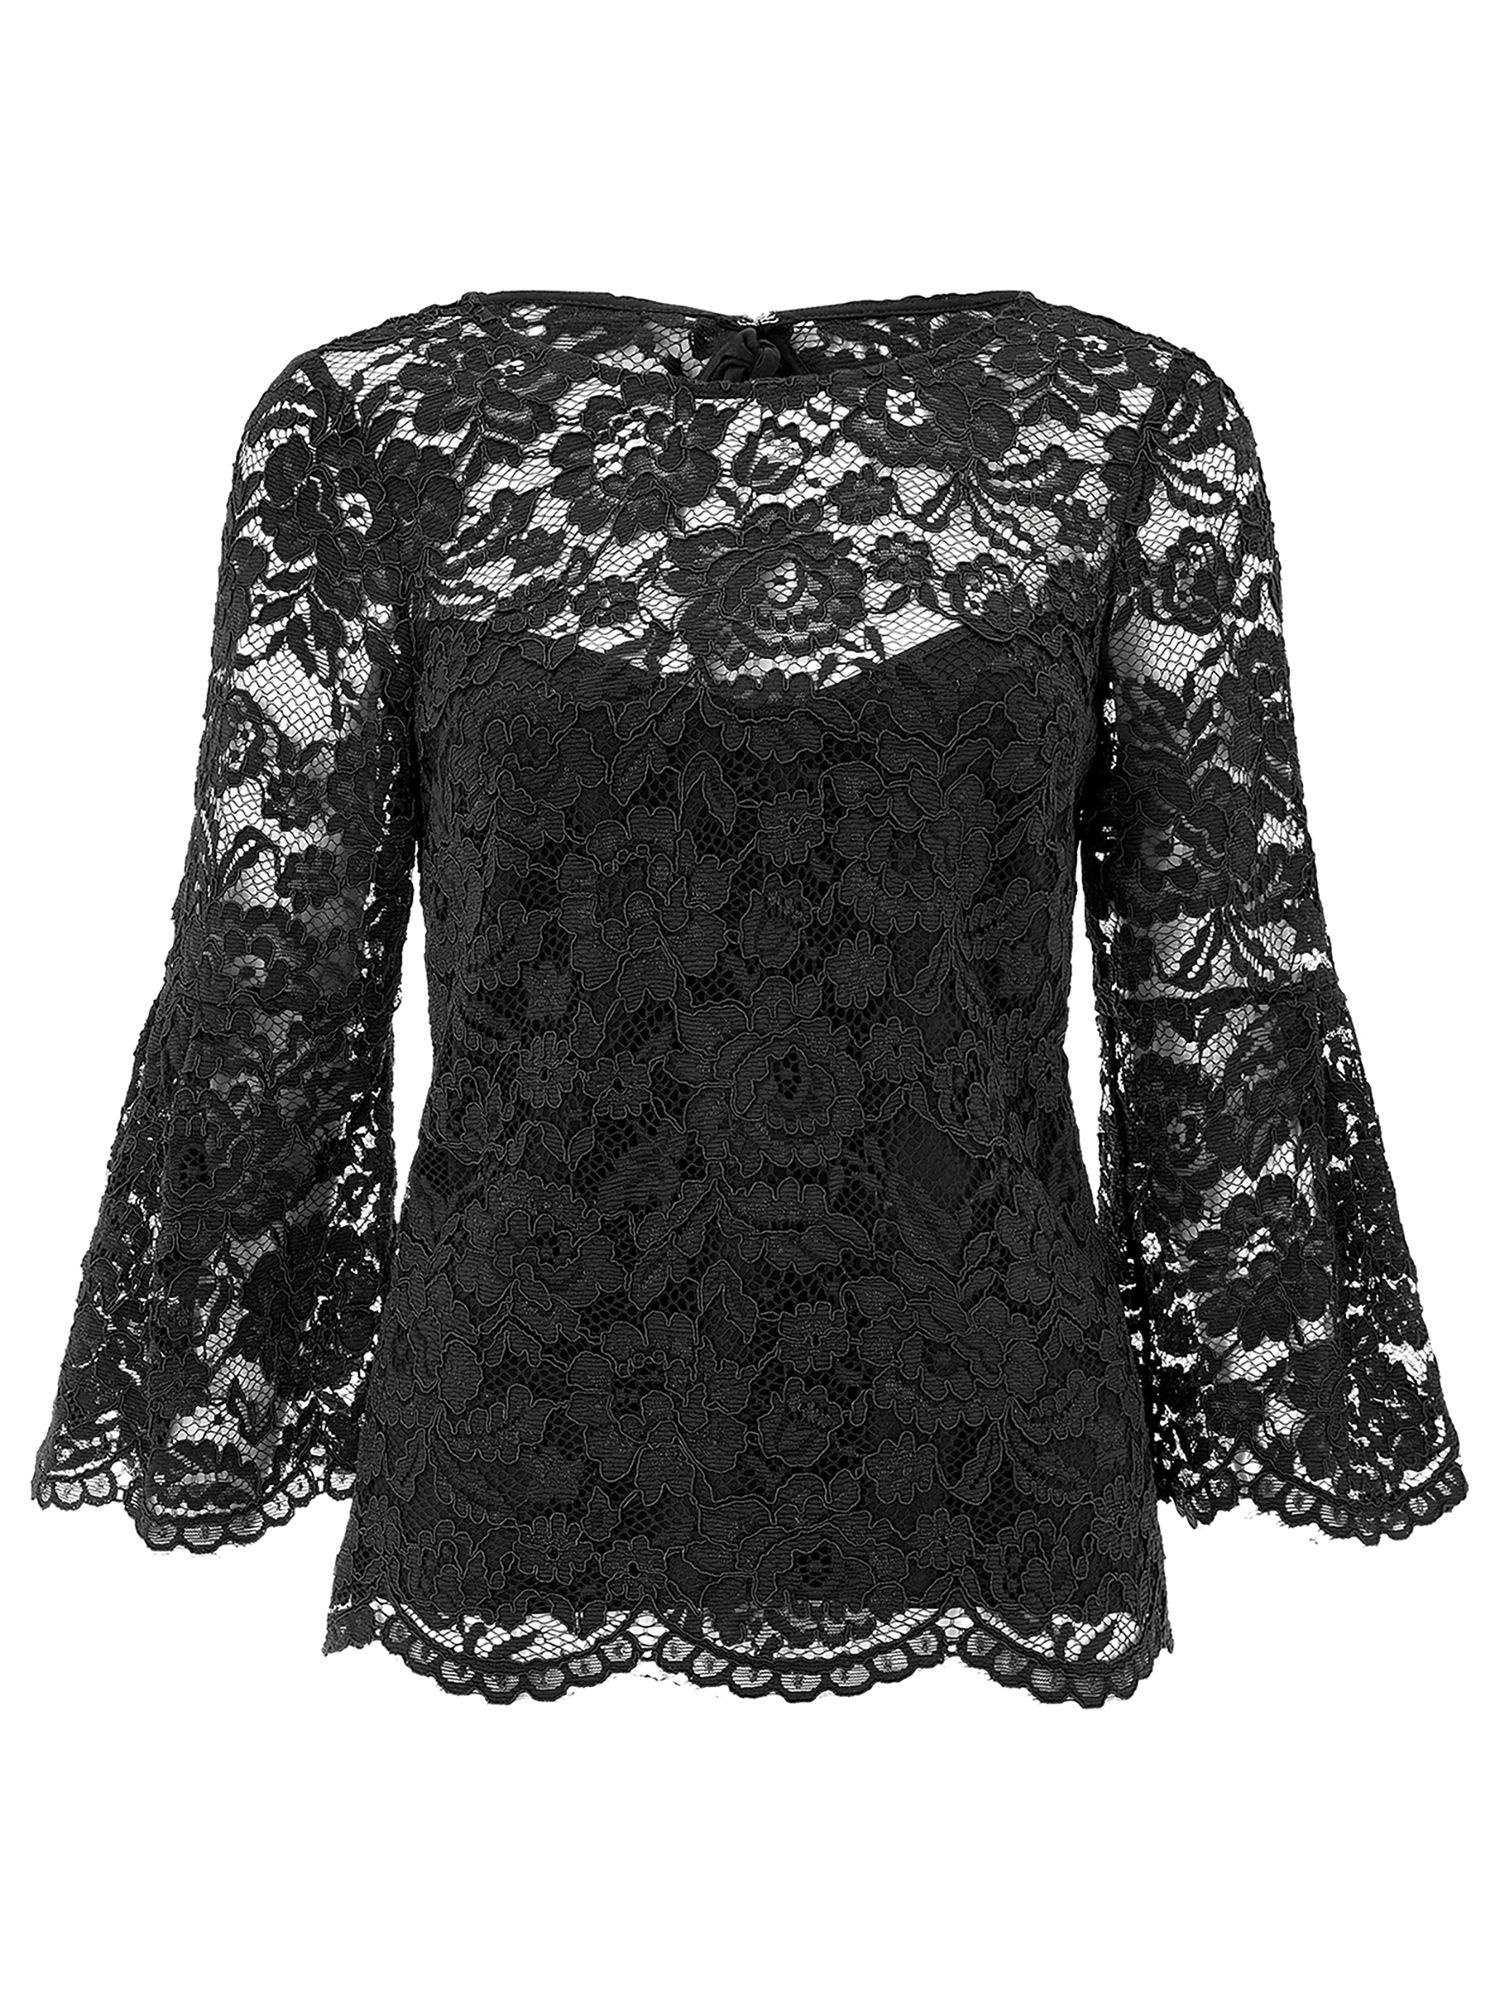 Monsoon Lana Lace Top, Black